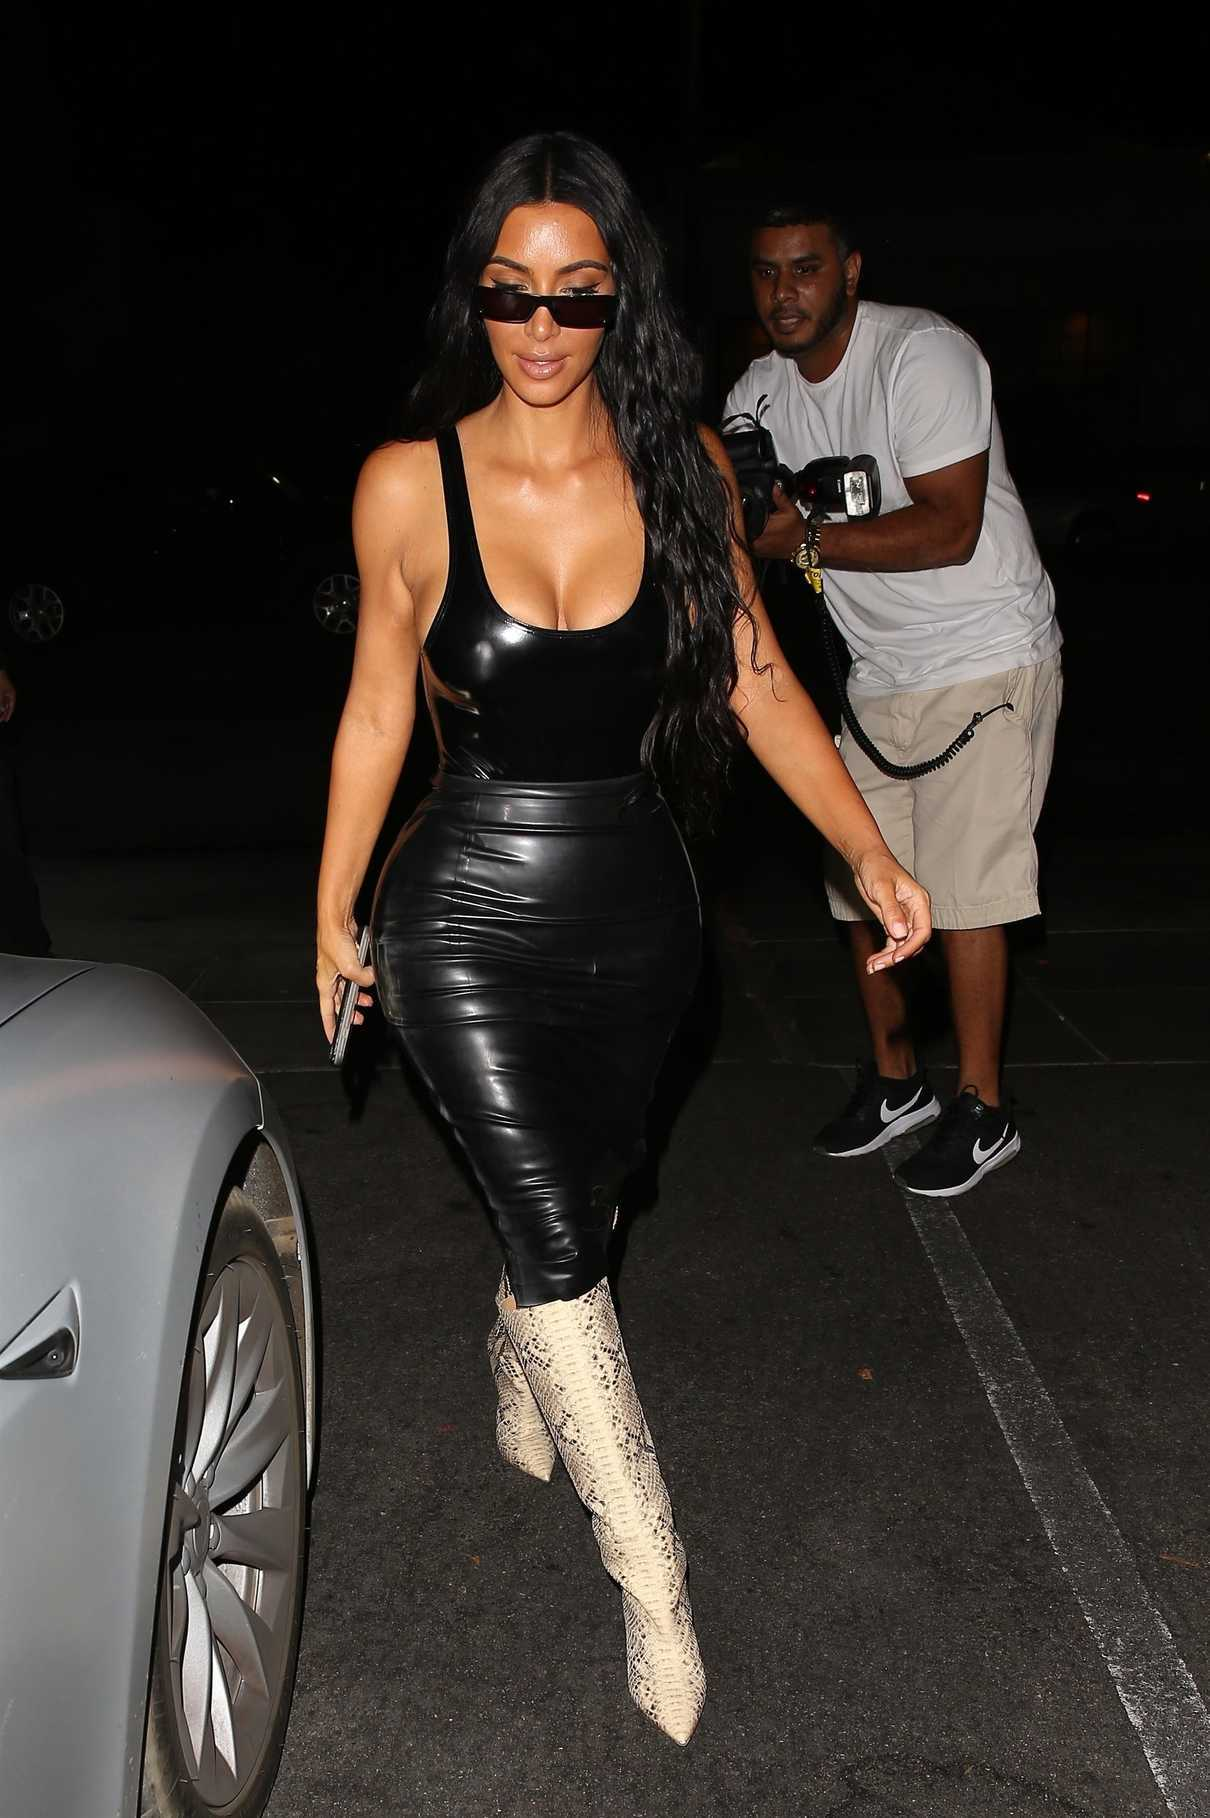 Kim Kardashian in a Black Leather Skirt